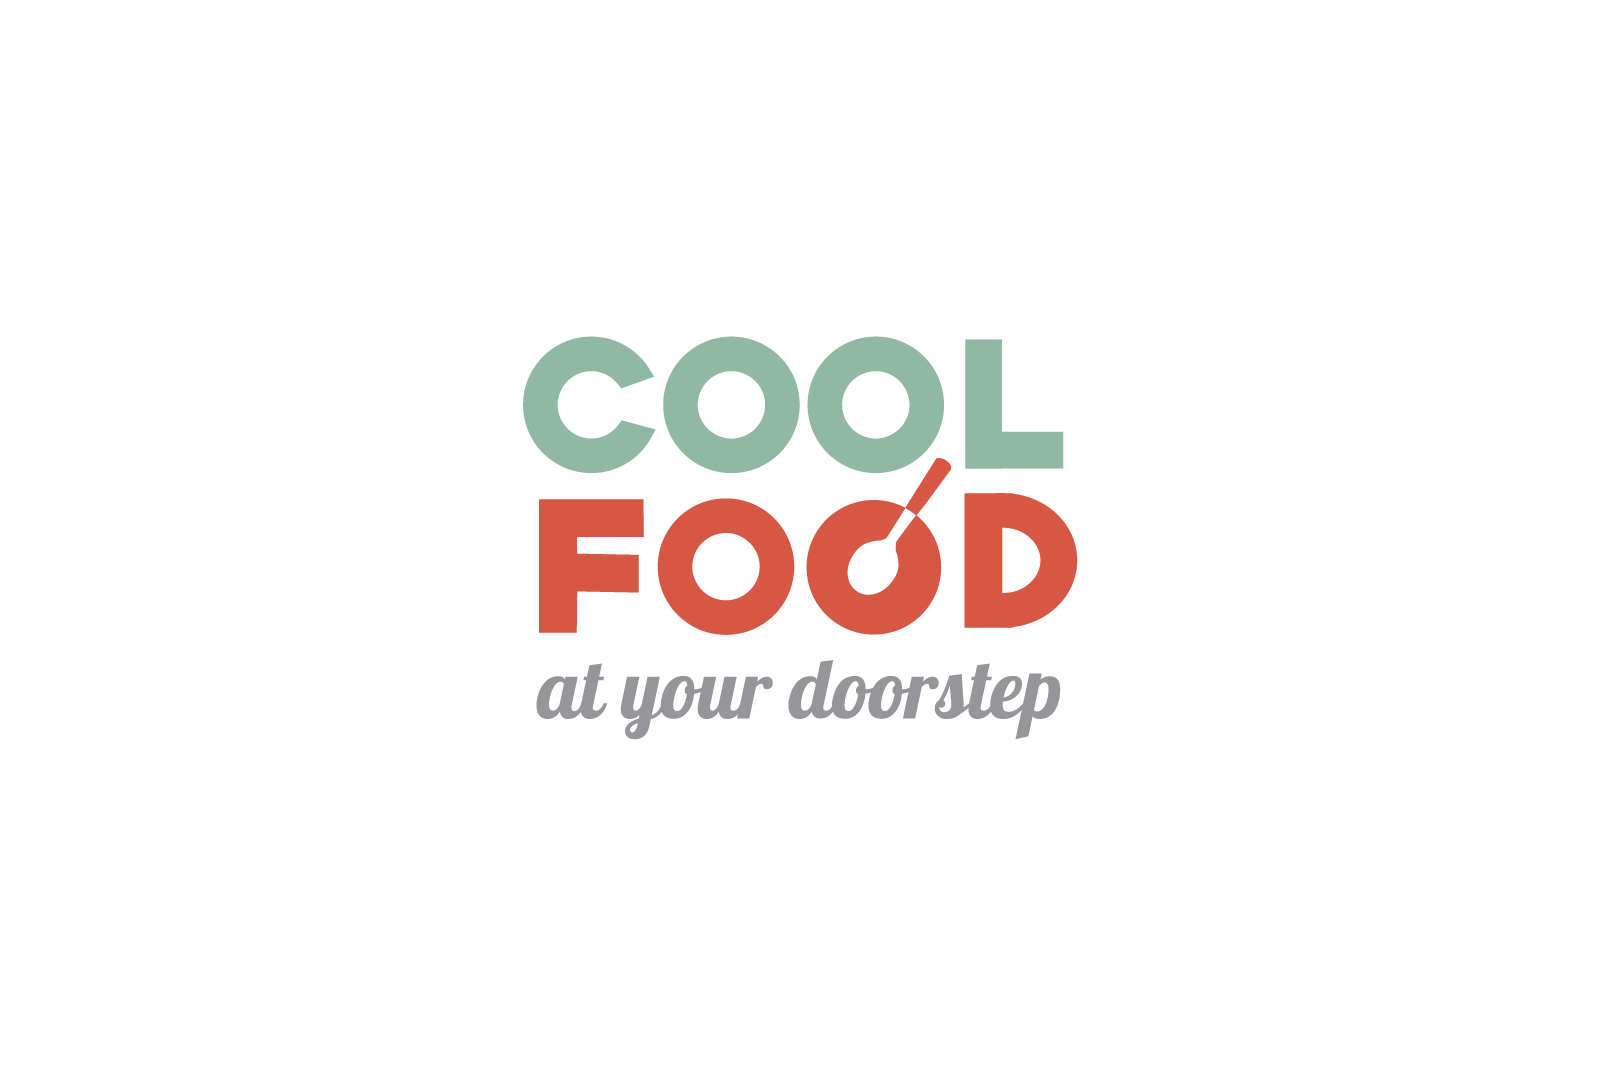 coolfood_01.png